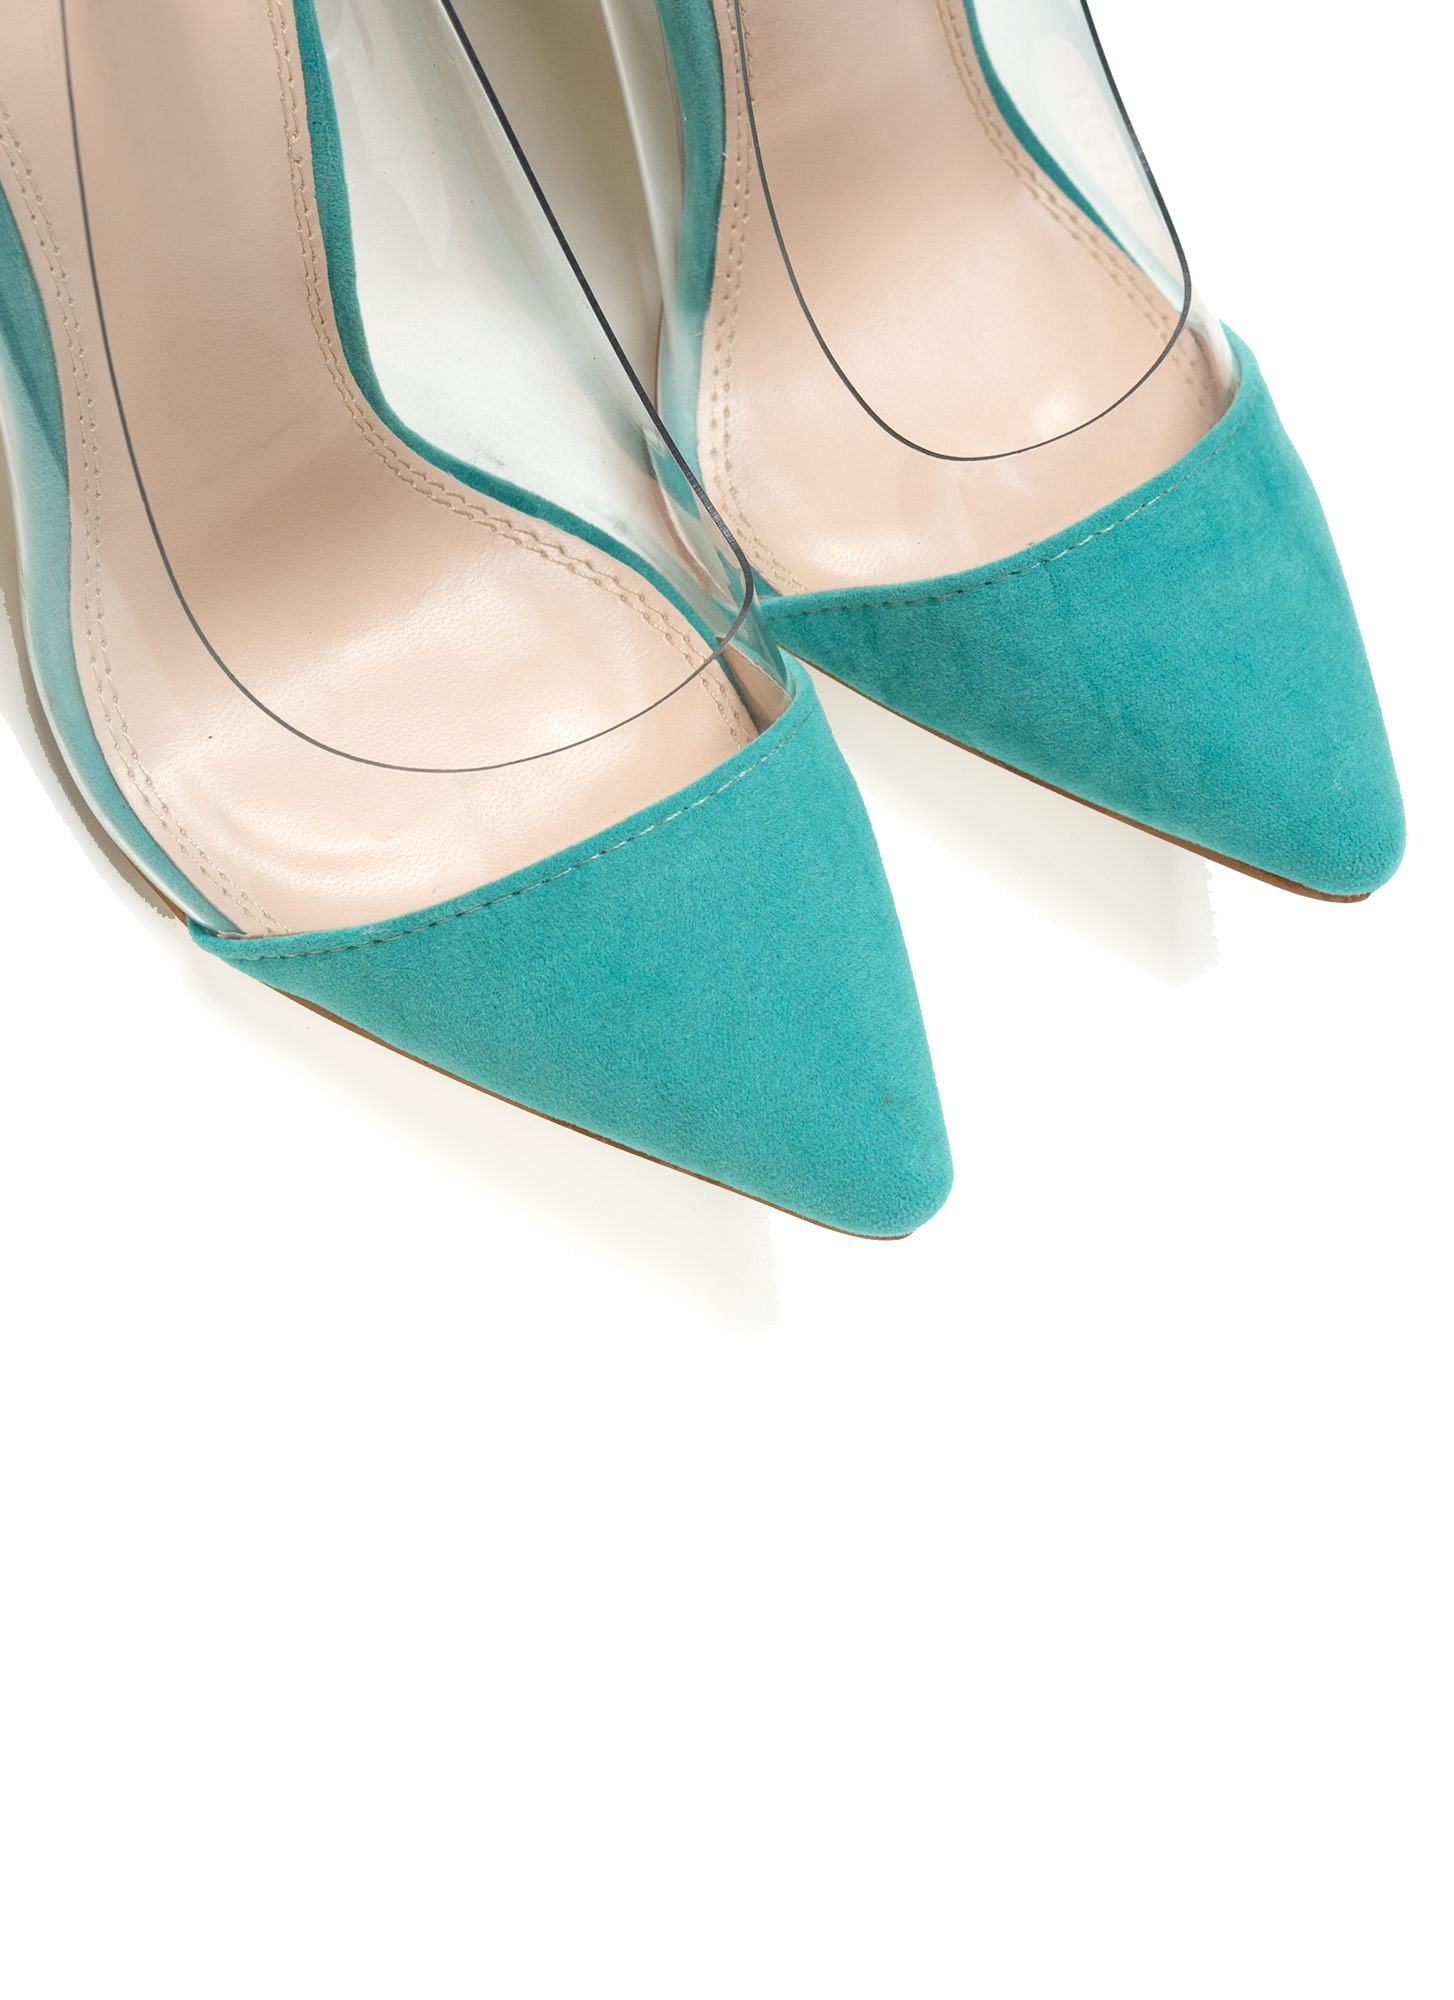 Show Some Skin Cap Toe Heels MINT